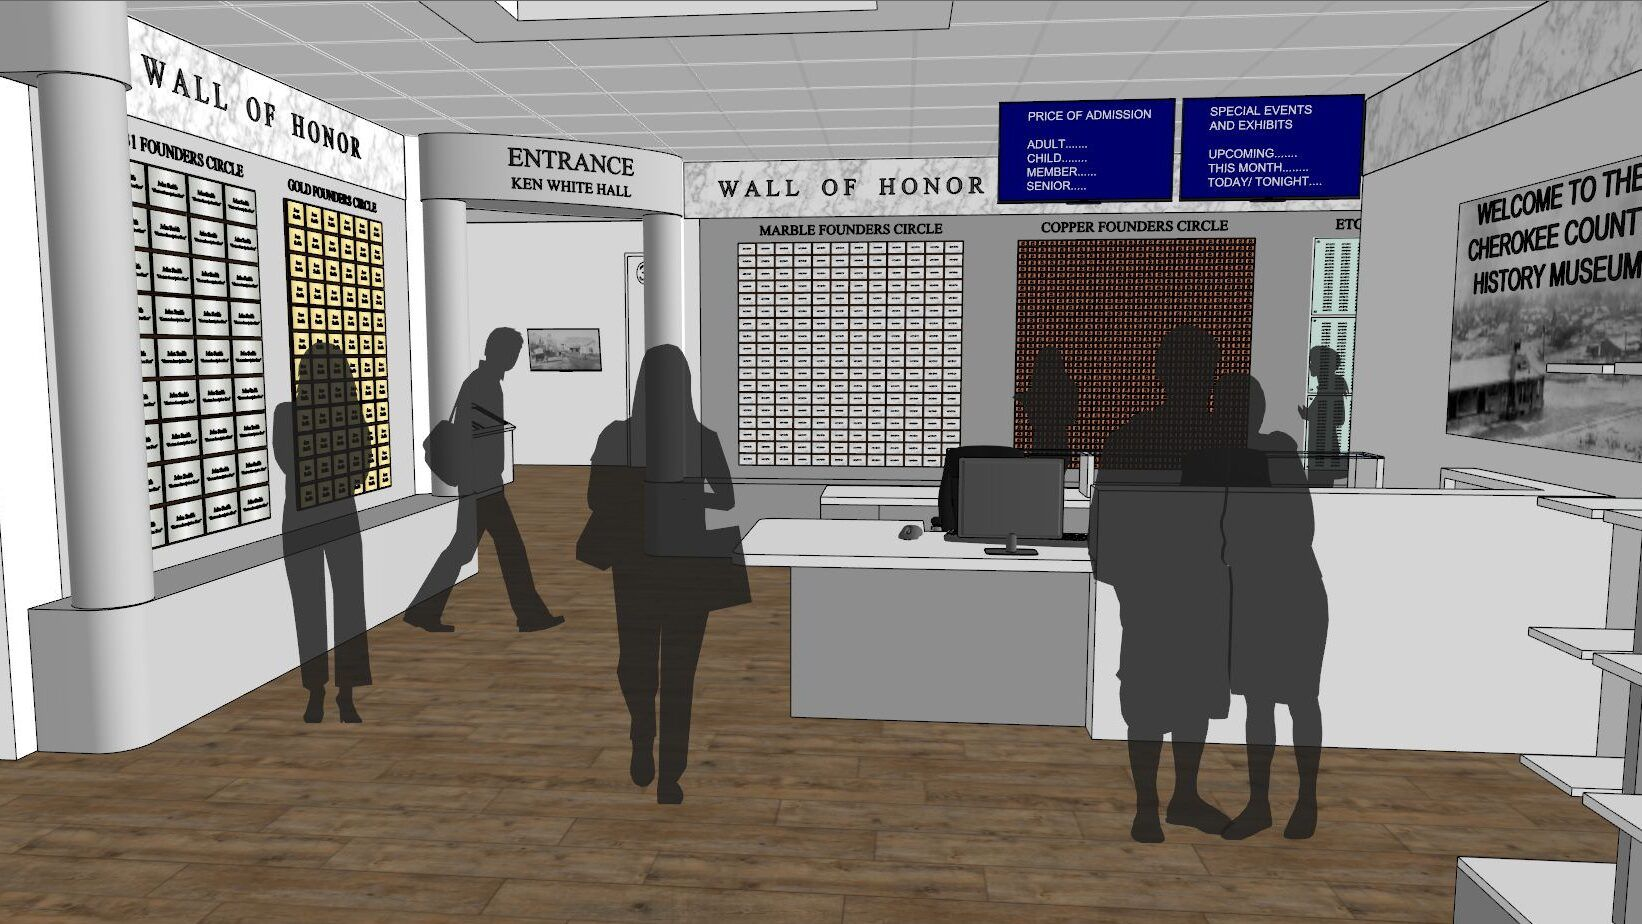 Lobby of new History Center with admissions desk and Wall of Honor